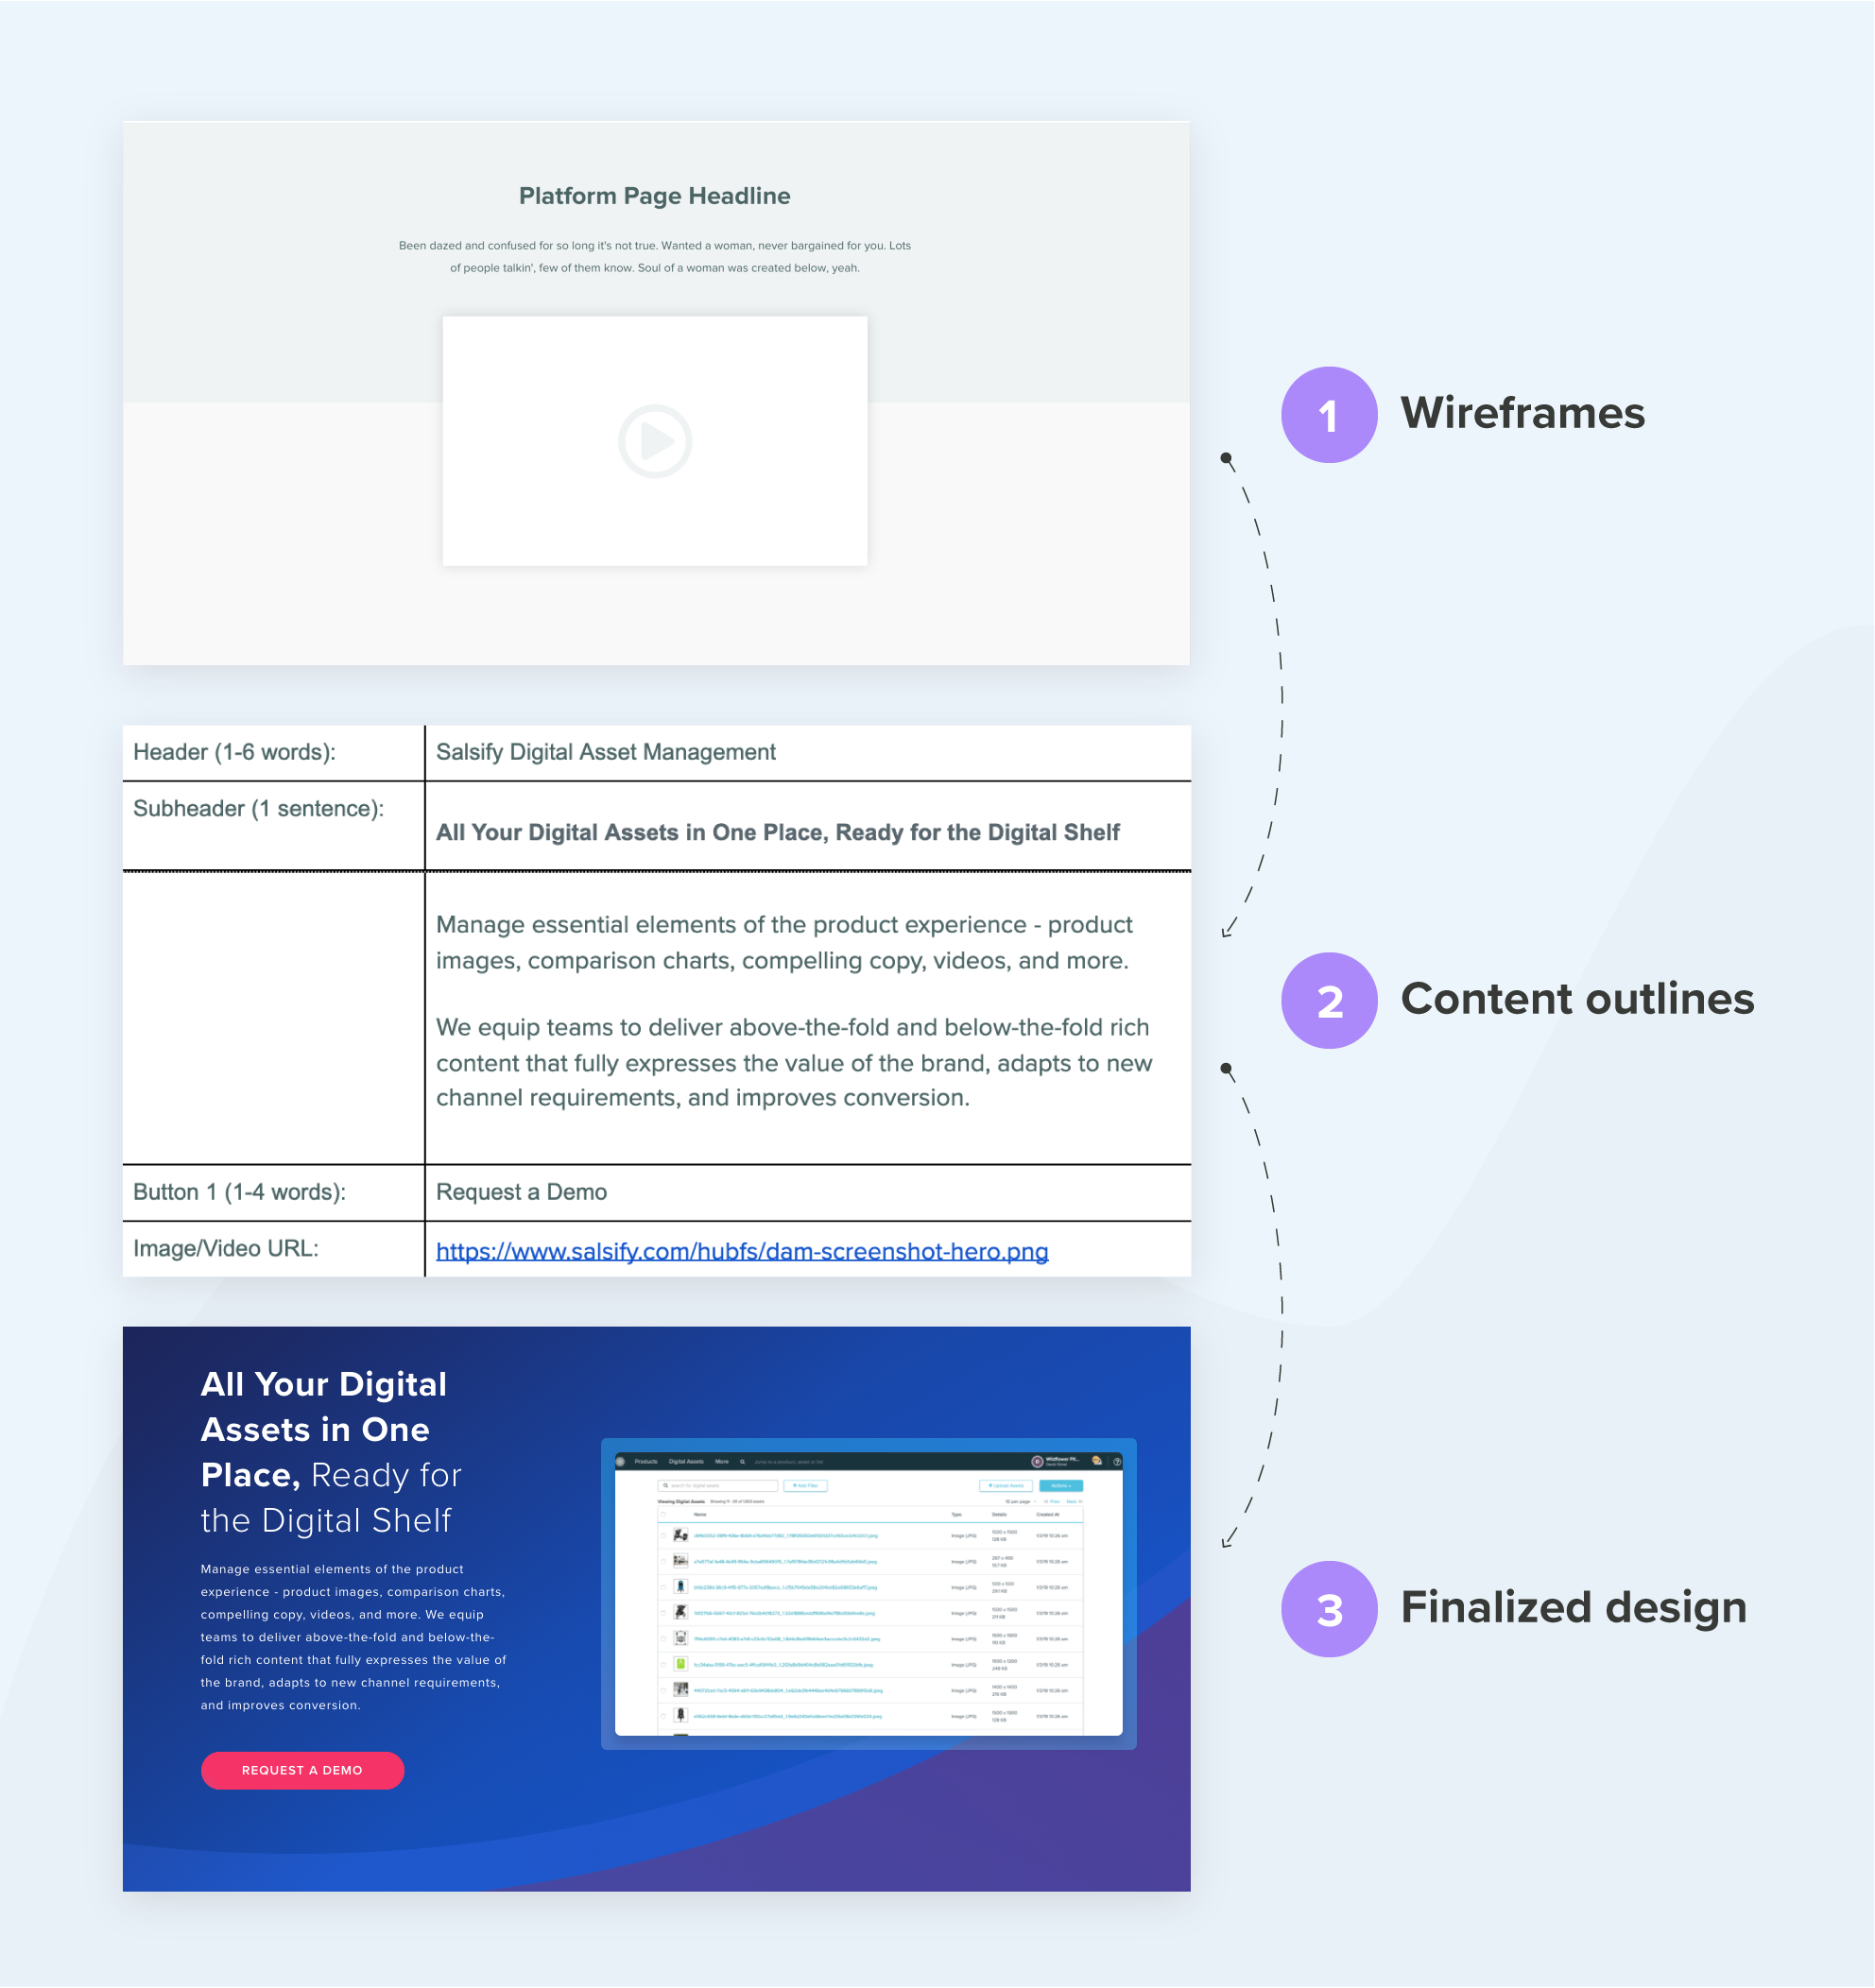 Infographic shows website content outlines come after wireframes and before finalized design